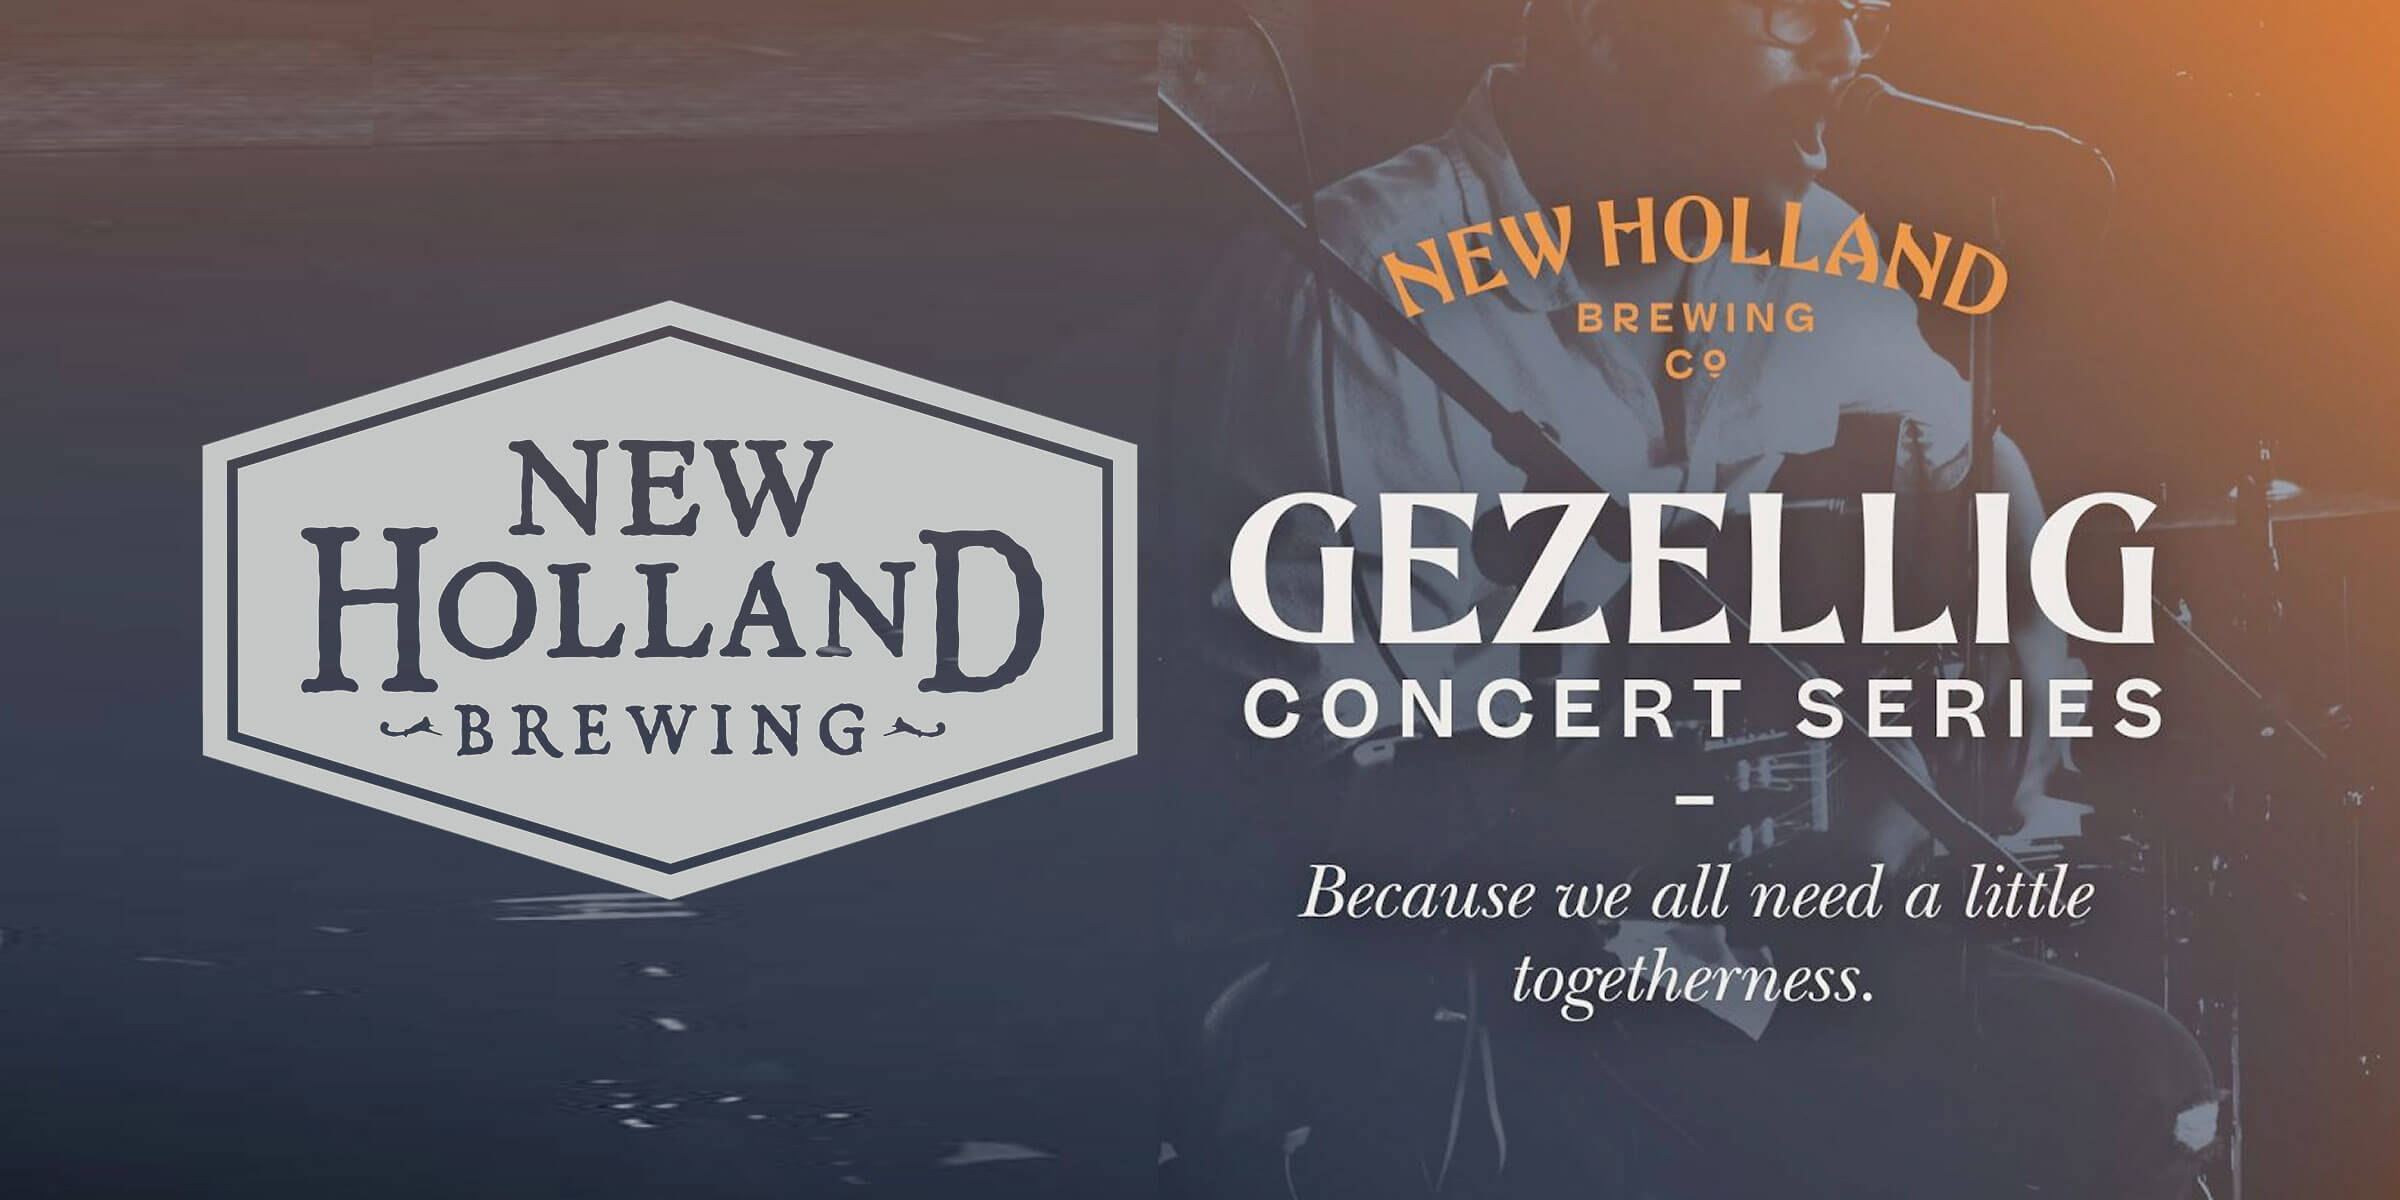 New Holland Brewing announced the Gezellig Virtual Concert Series, an opportunity for musicians and artists to perform from the safety of their own homes.